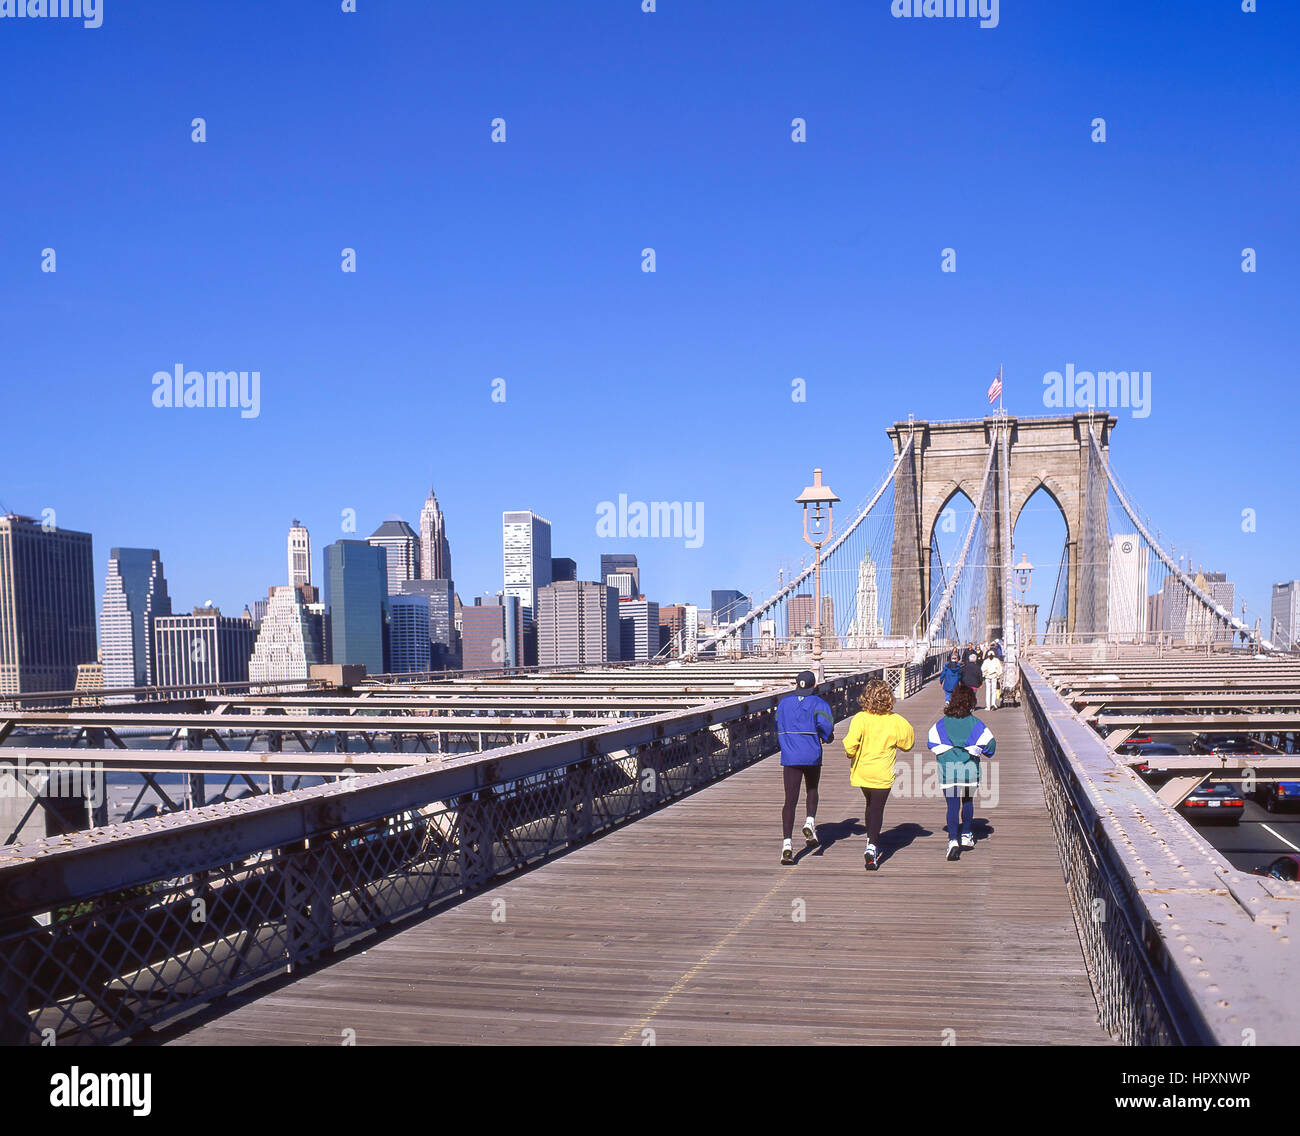 Pedestrian walkway over Brooklyn Bridge, Manhattan, New York, New York State, United States of America Stock Photo